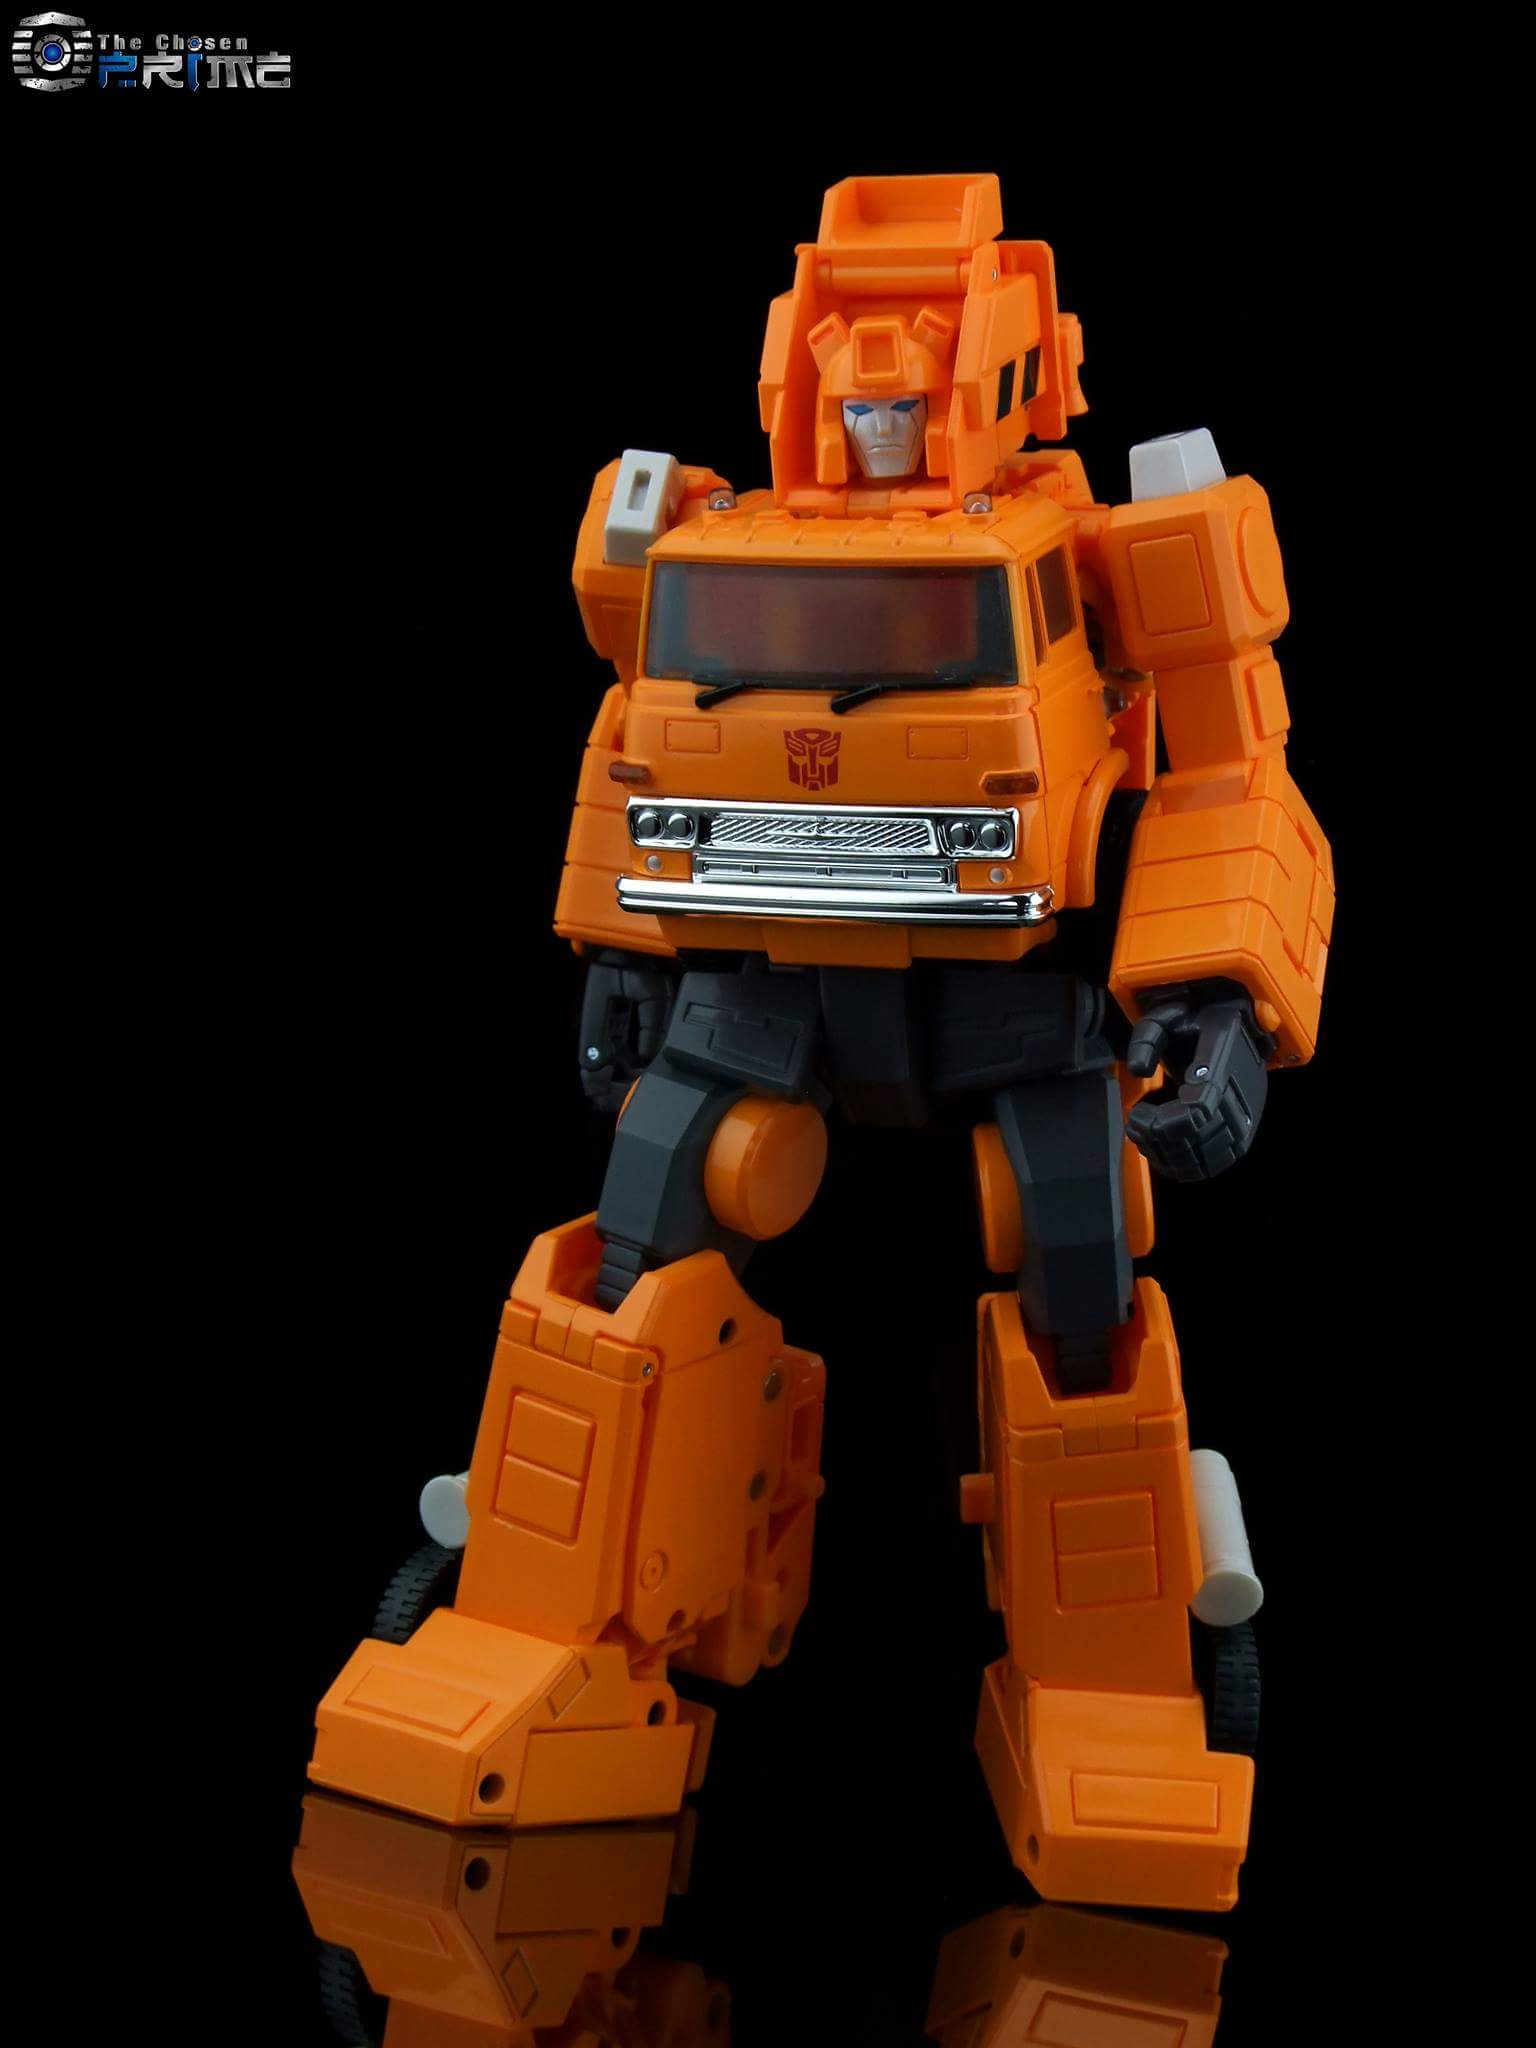 [Masterpiece] MP-35 Grapple/Grappin 1iWOZZlM